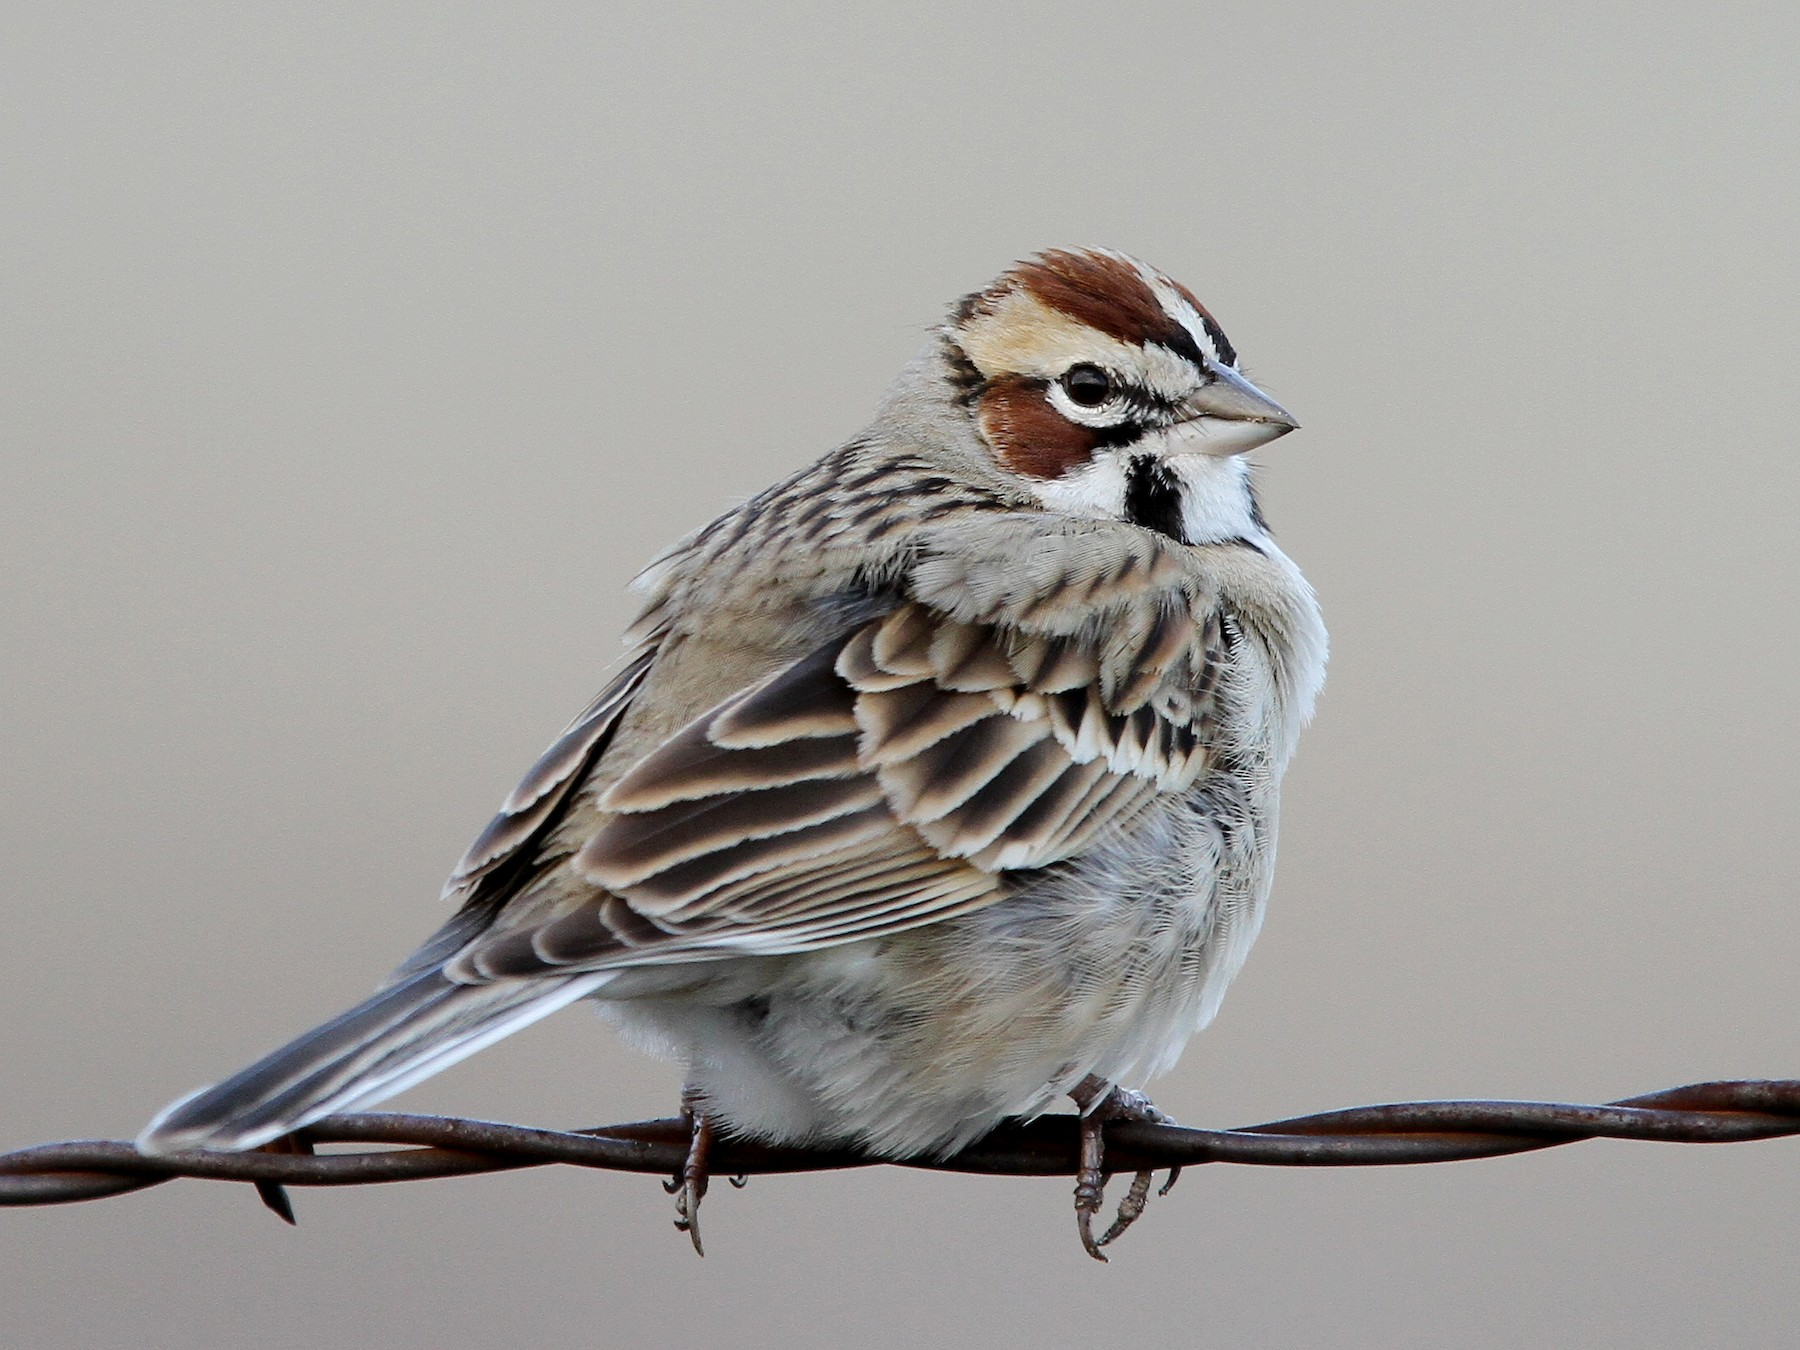 Lark Sparrow - Christoph Moning